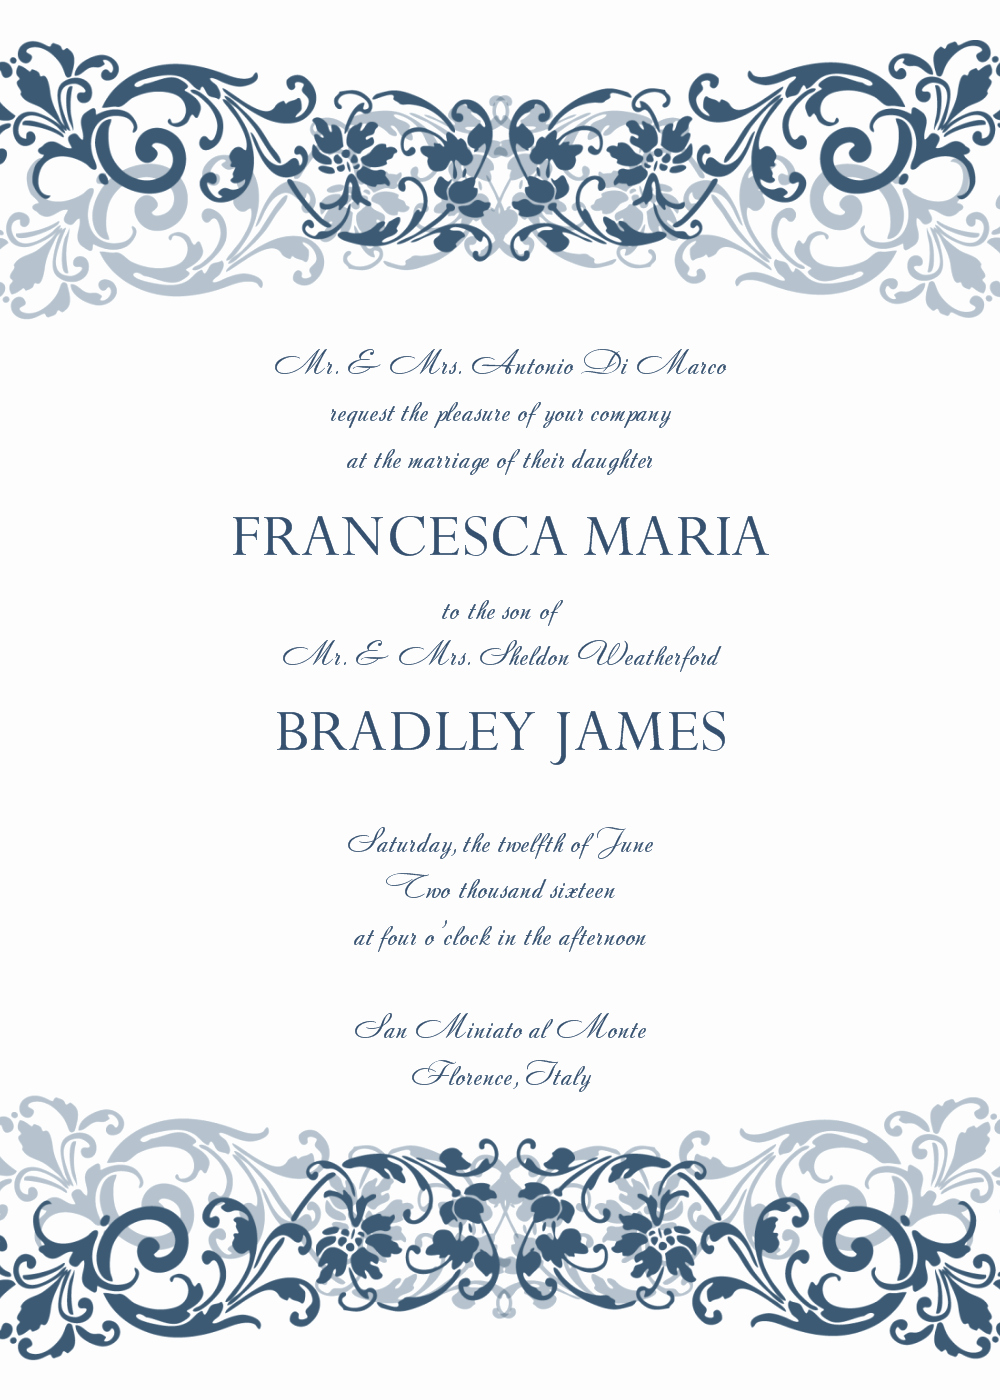 Wedding Invitation Template Free Download Beautiful 8 Free Wedding Invitation Templates Excel Pdf formats